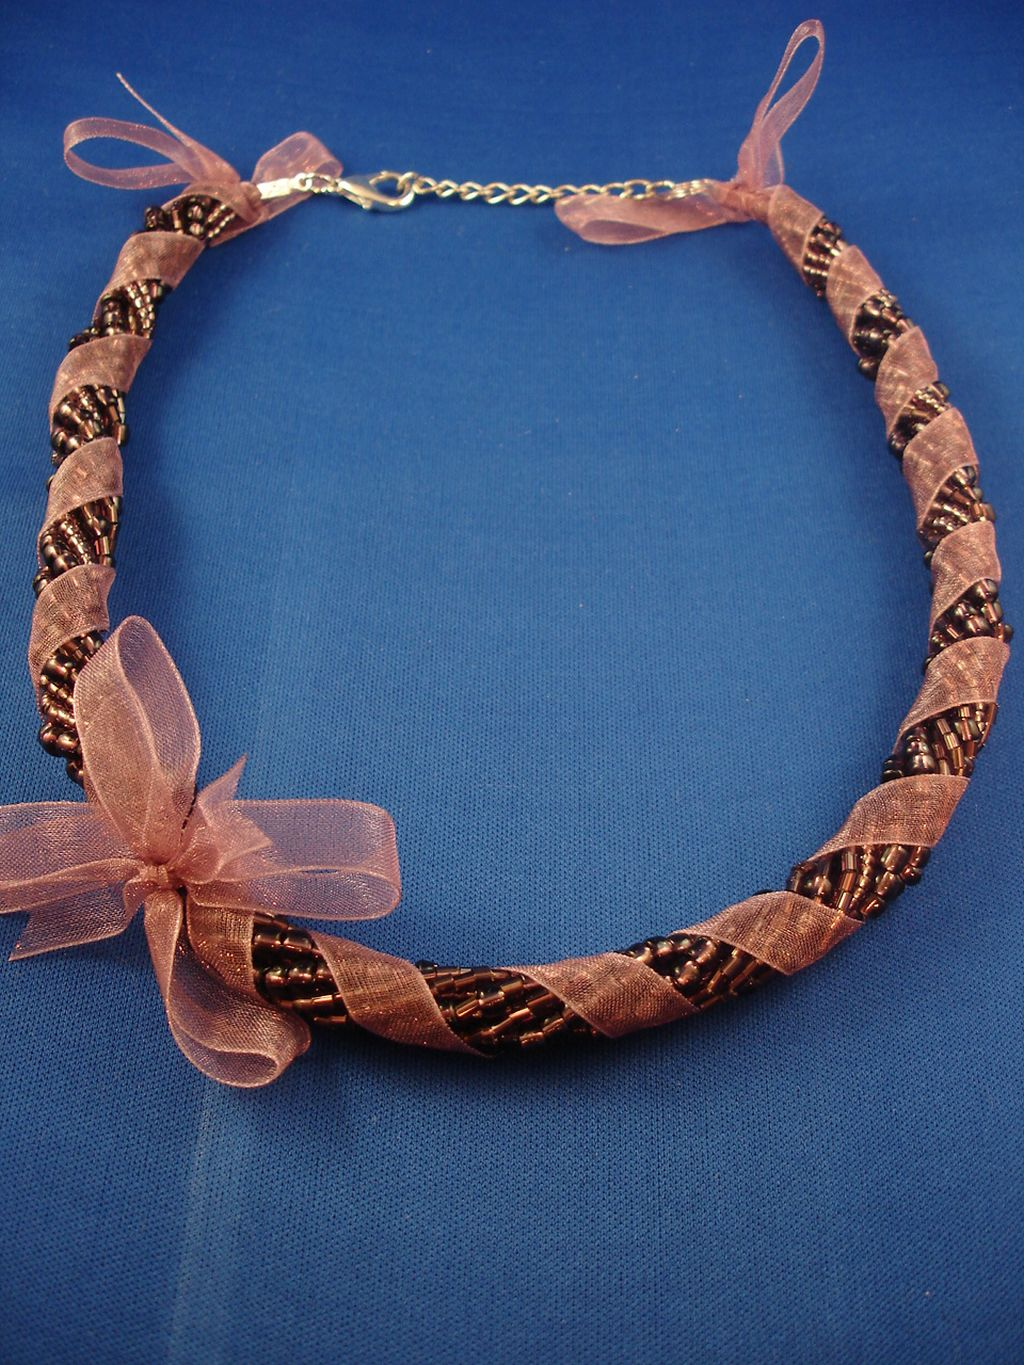 Purple Ribbon Necklace, Eight Twisted Strings of Beads, European Fashion Jewelry